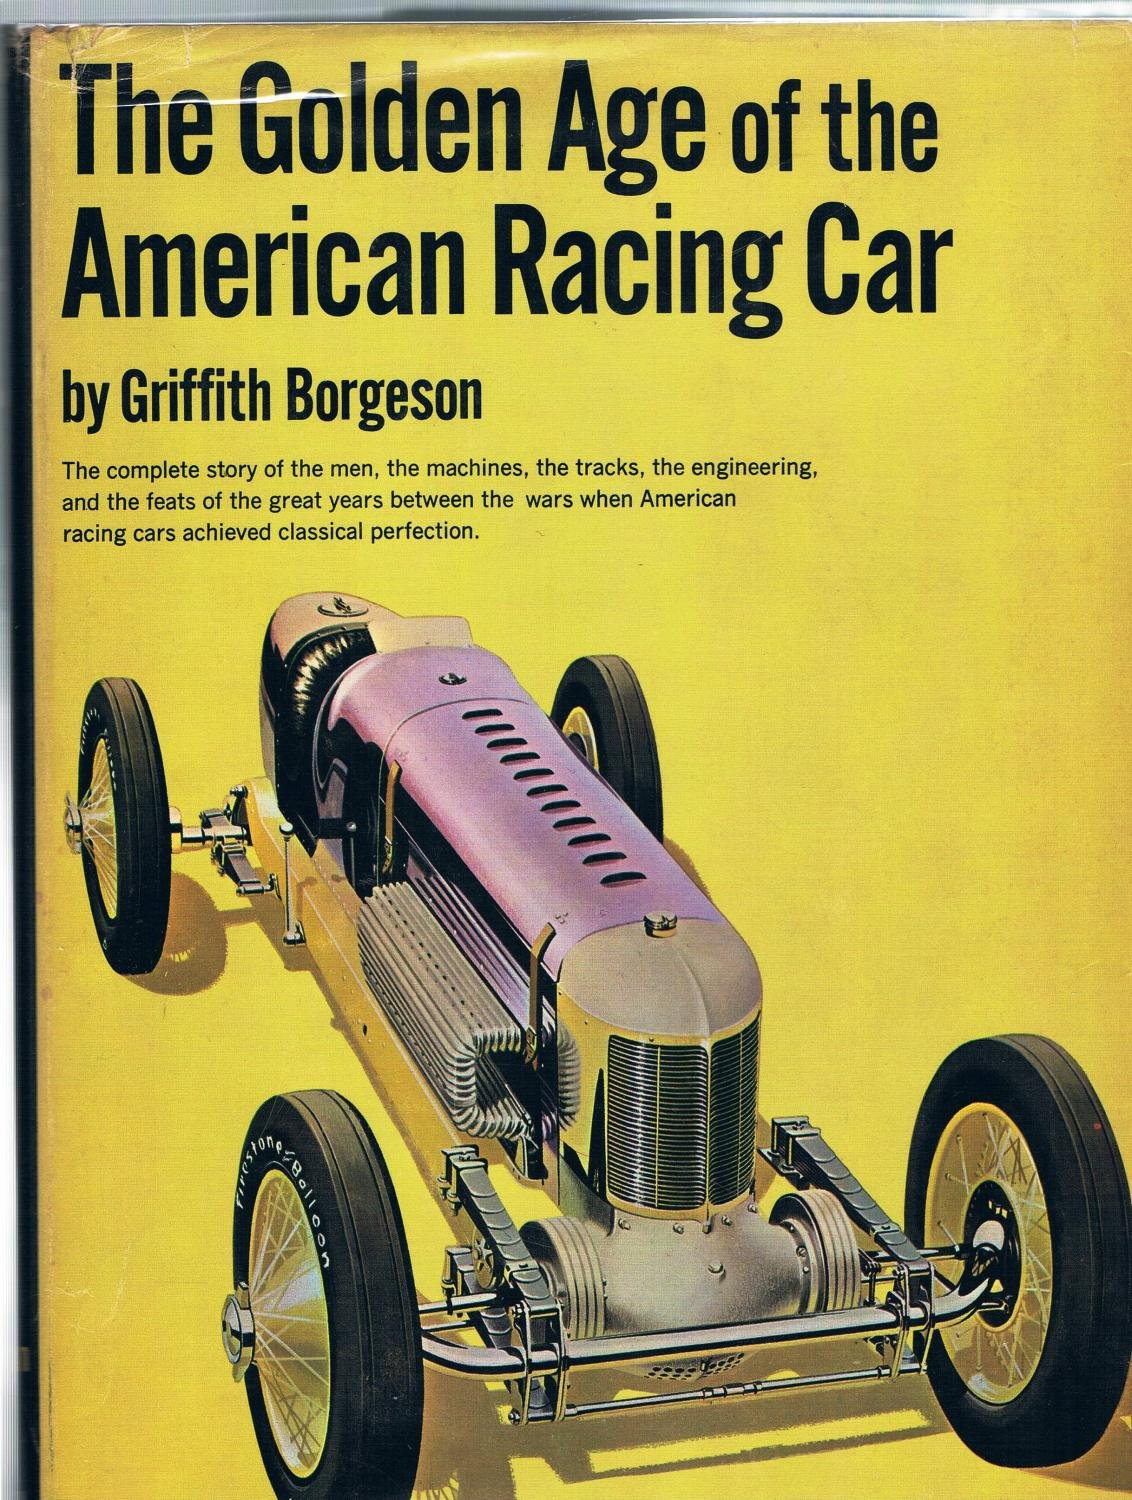 The golden age of the American racing car: Griffith Borgeson: Amazon ...